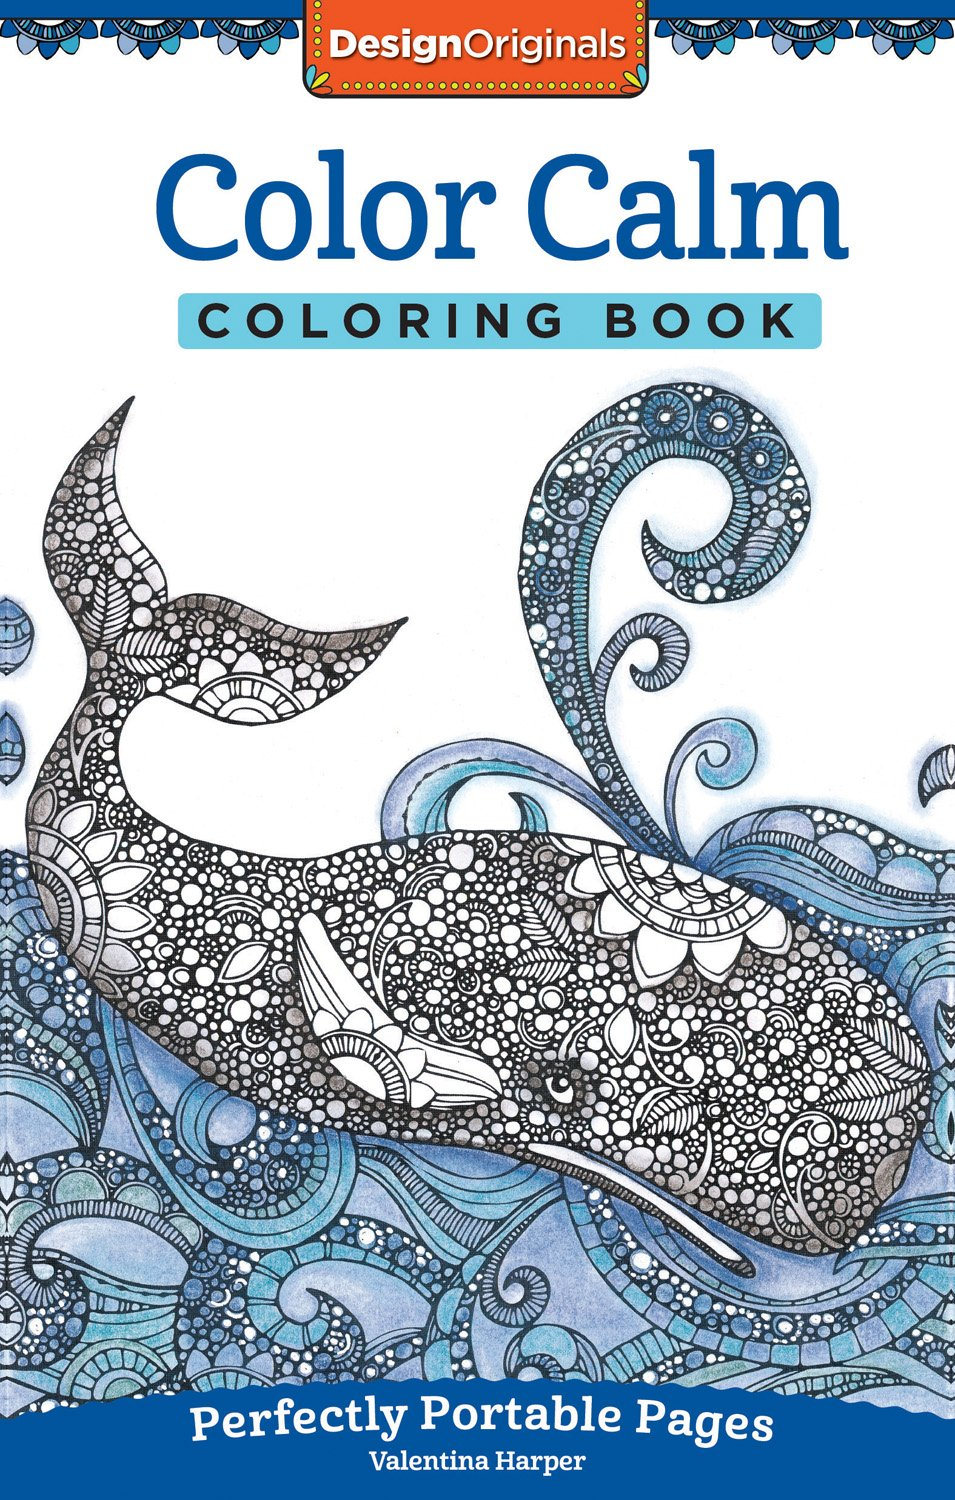 Amazon.com: Color Calm Coloring Book: Perfectly Portable Pages (On ...